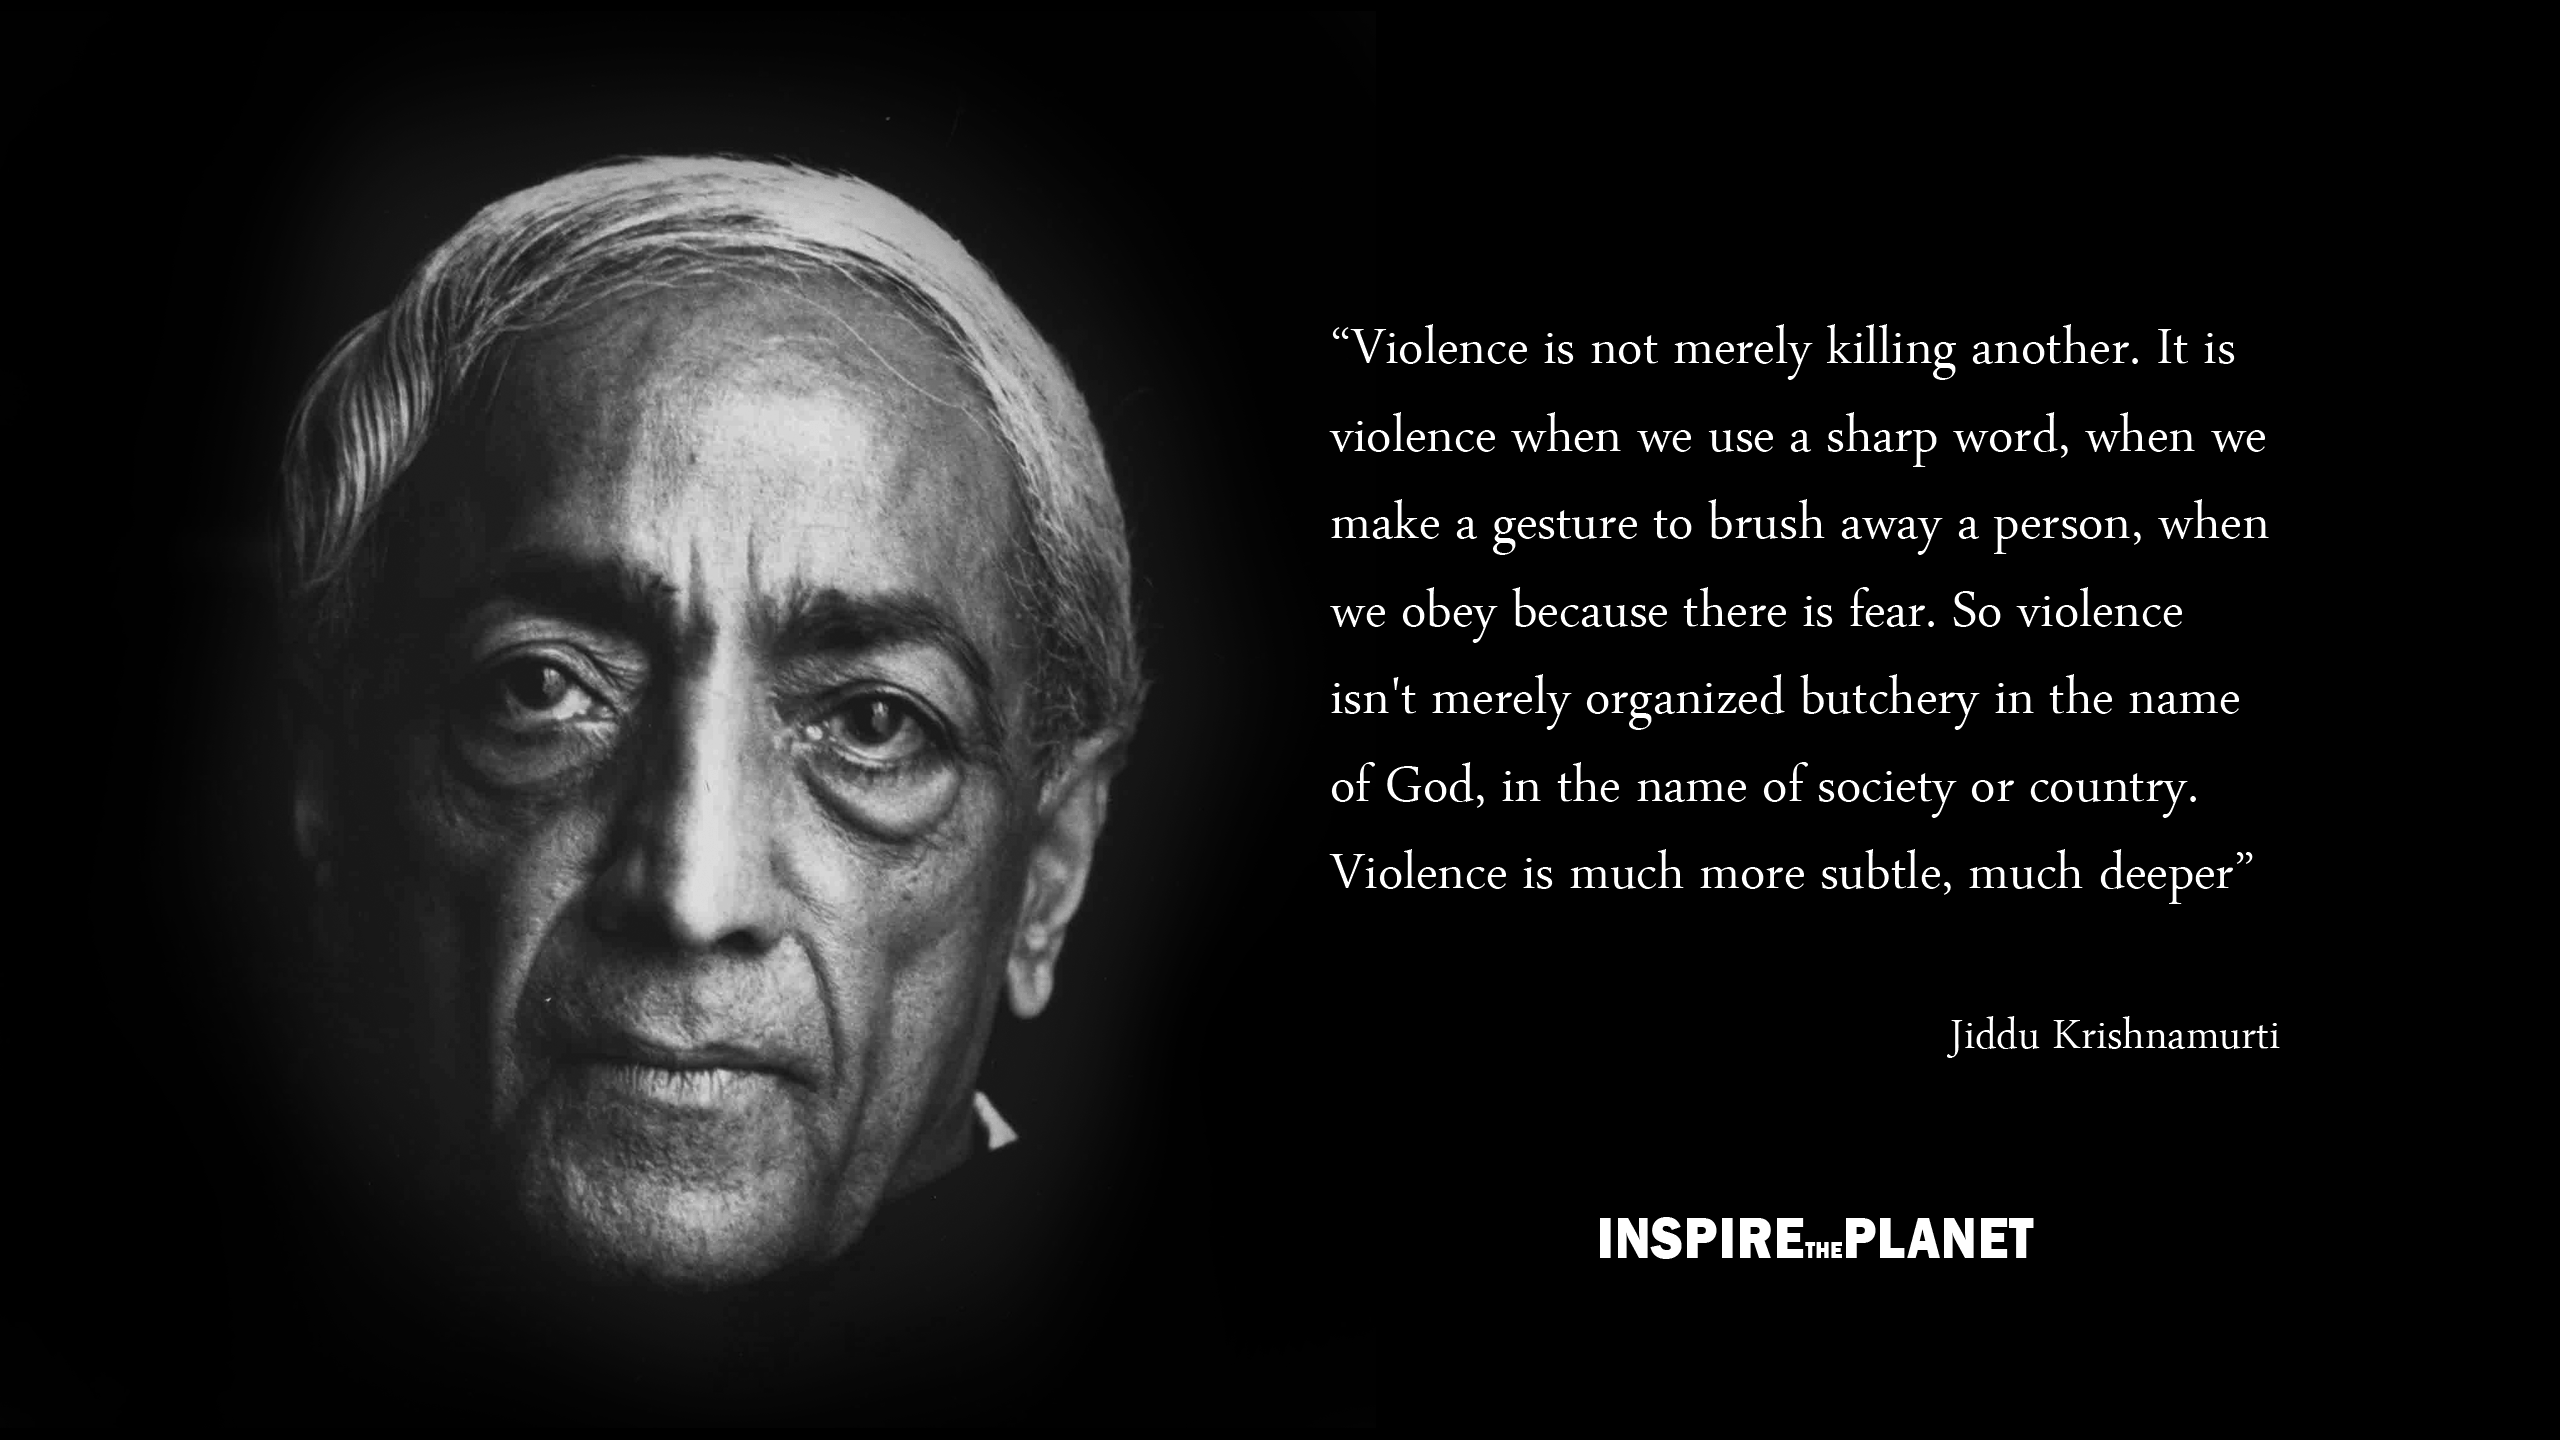 jiddu krishnamurti Jiddu krishnamurti: jiddu krishnamurti, indian spiritual leader he was educated in theosophy by the british social reformer annie besant, who proclaimed him the coming world teacher, a messianic figure who would bring about world enlightenment he became a teacher and writer, and from the.